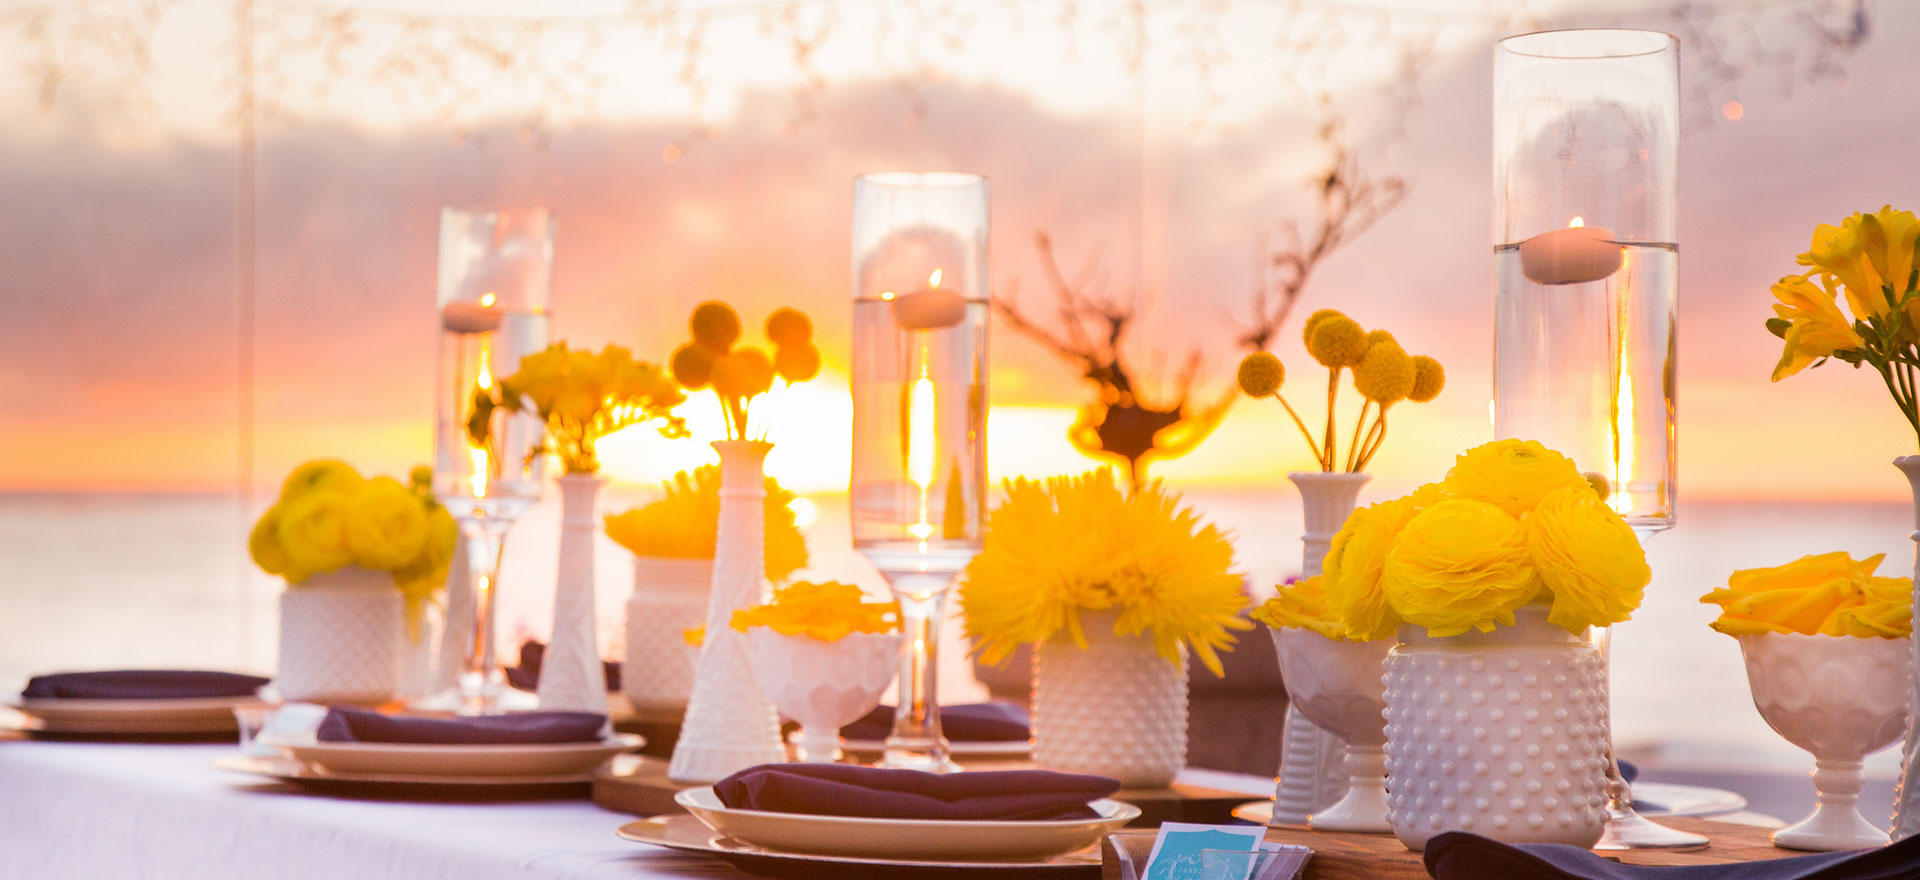 Catering Weddings, Corporate Events and Picnics in San Diego!